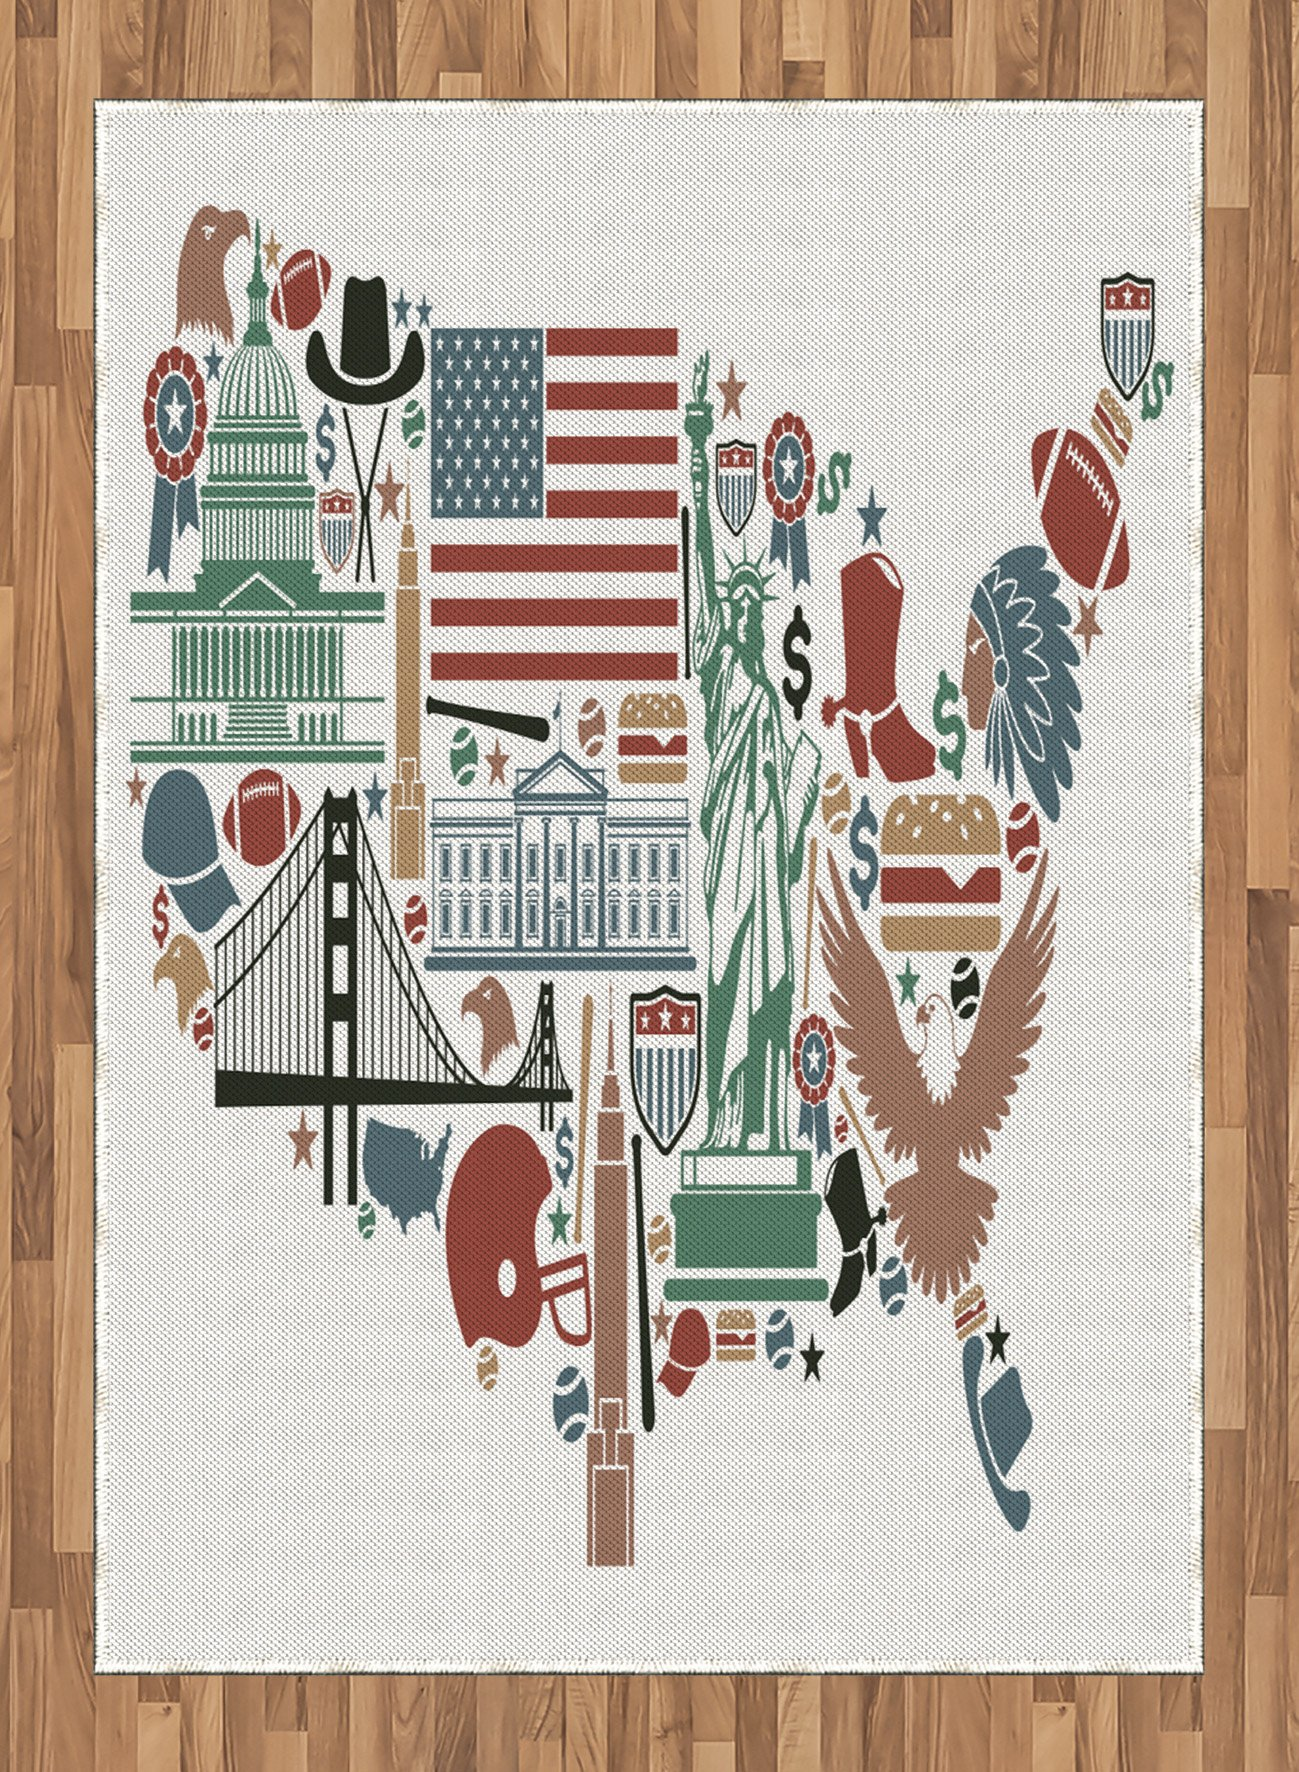 Map Area Rug by Ambesonne, Traditional Symbols in The Form of United States of America Map Travel Landmarks Flag, Flat Woven Accent Rug for Living Room Bedroom Dining Room, 5.2 x 7.5 FT, Multicolor by Ambesonne